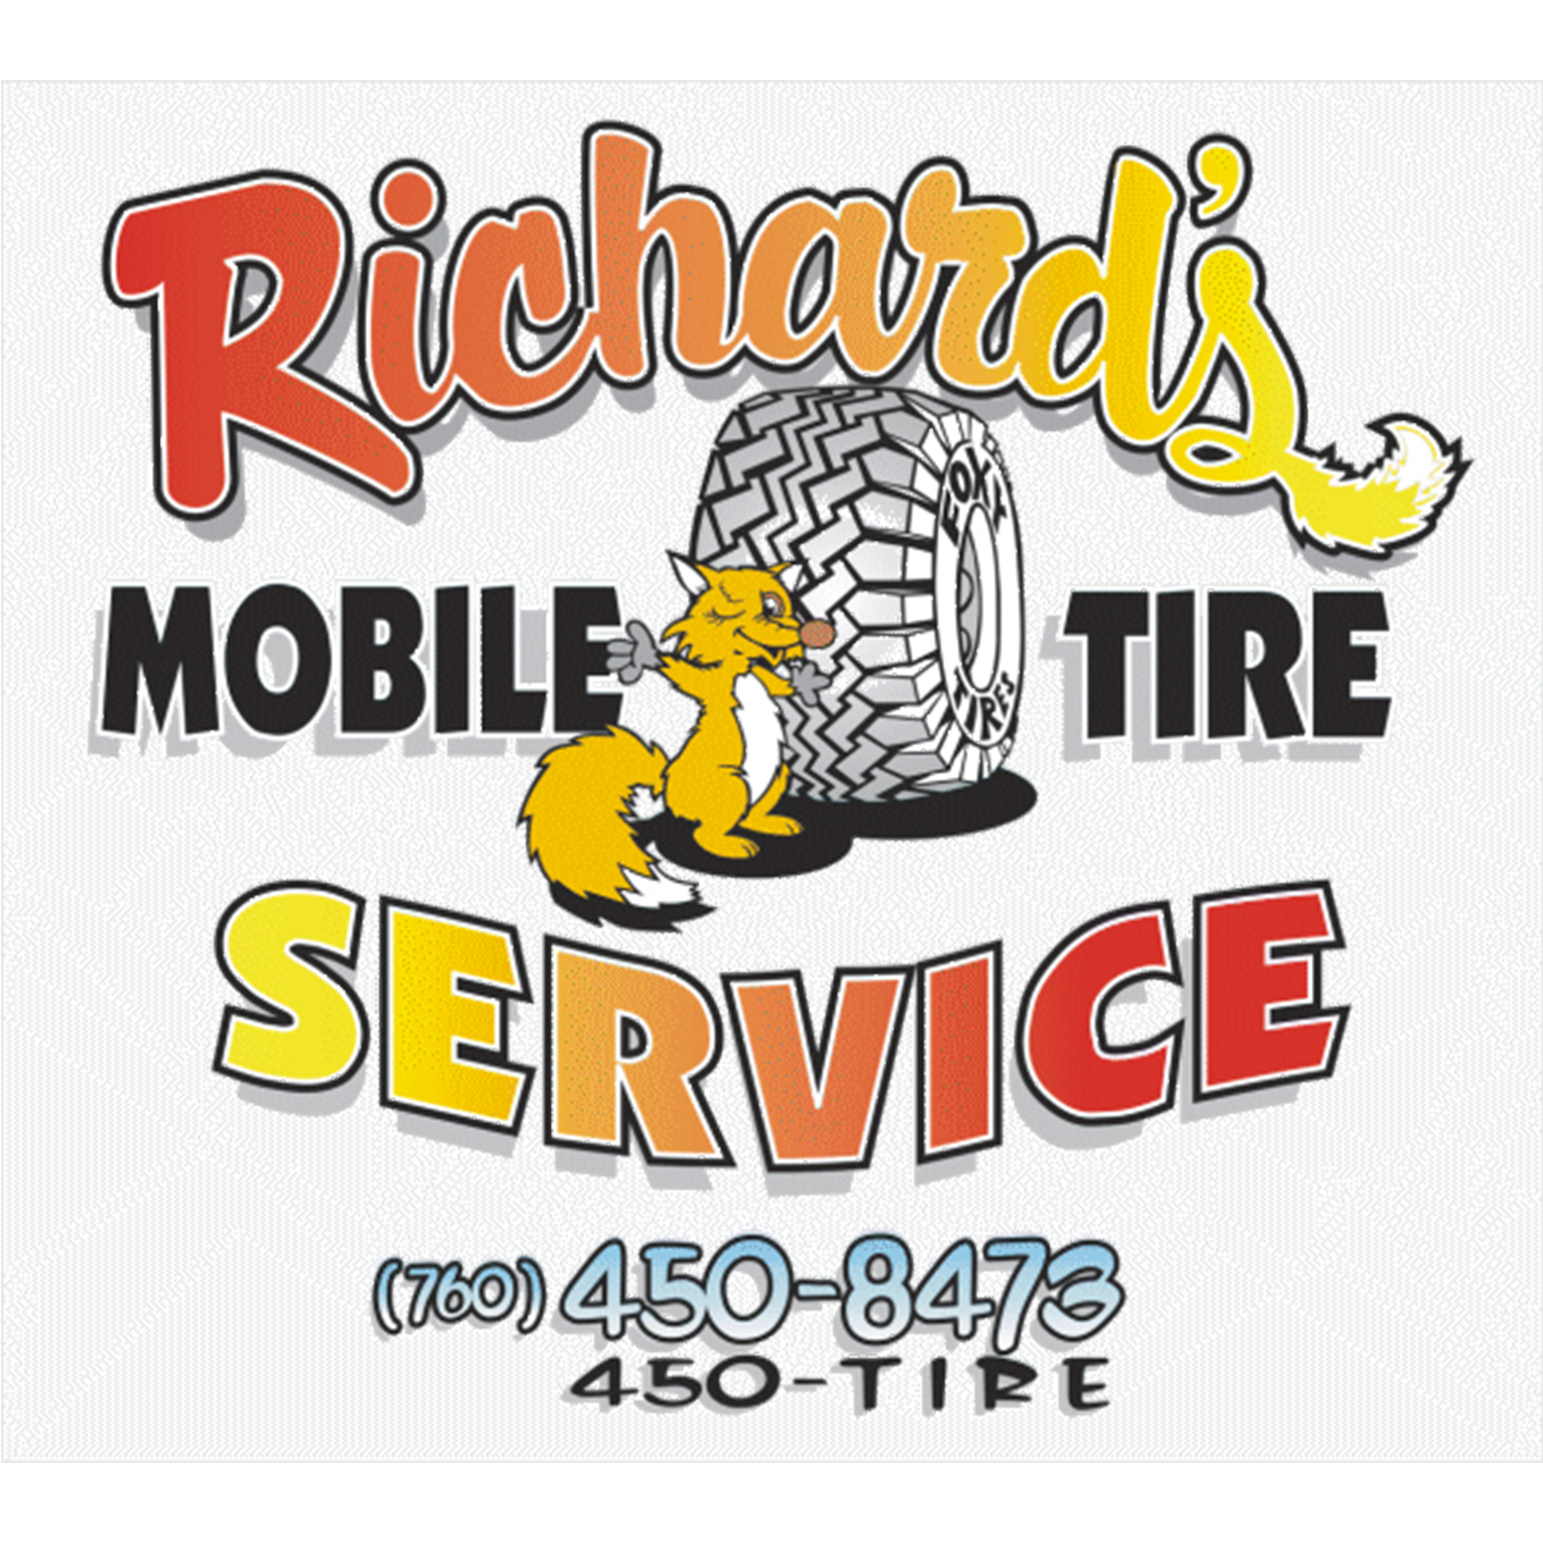 Richards 24-Hour Mobile Tire Service